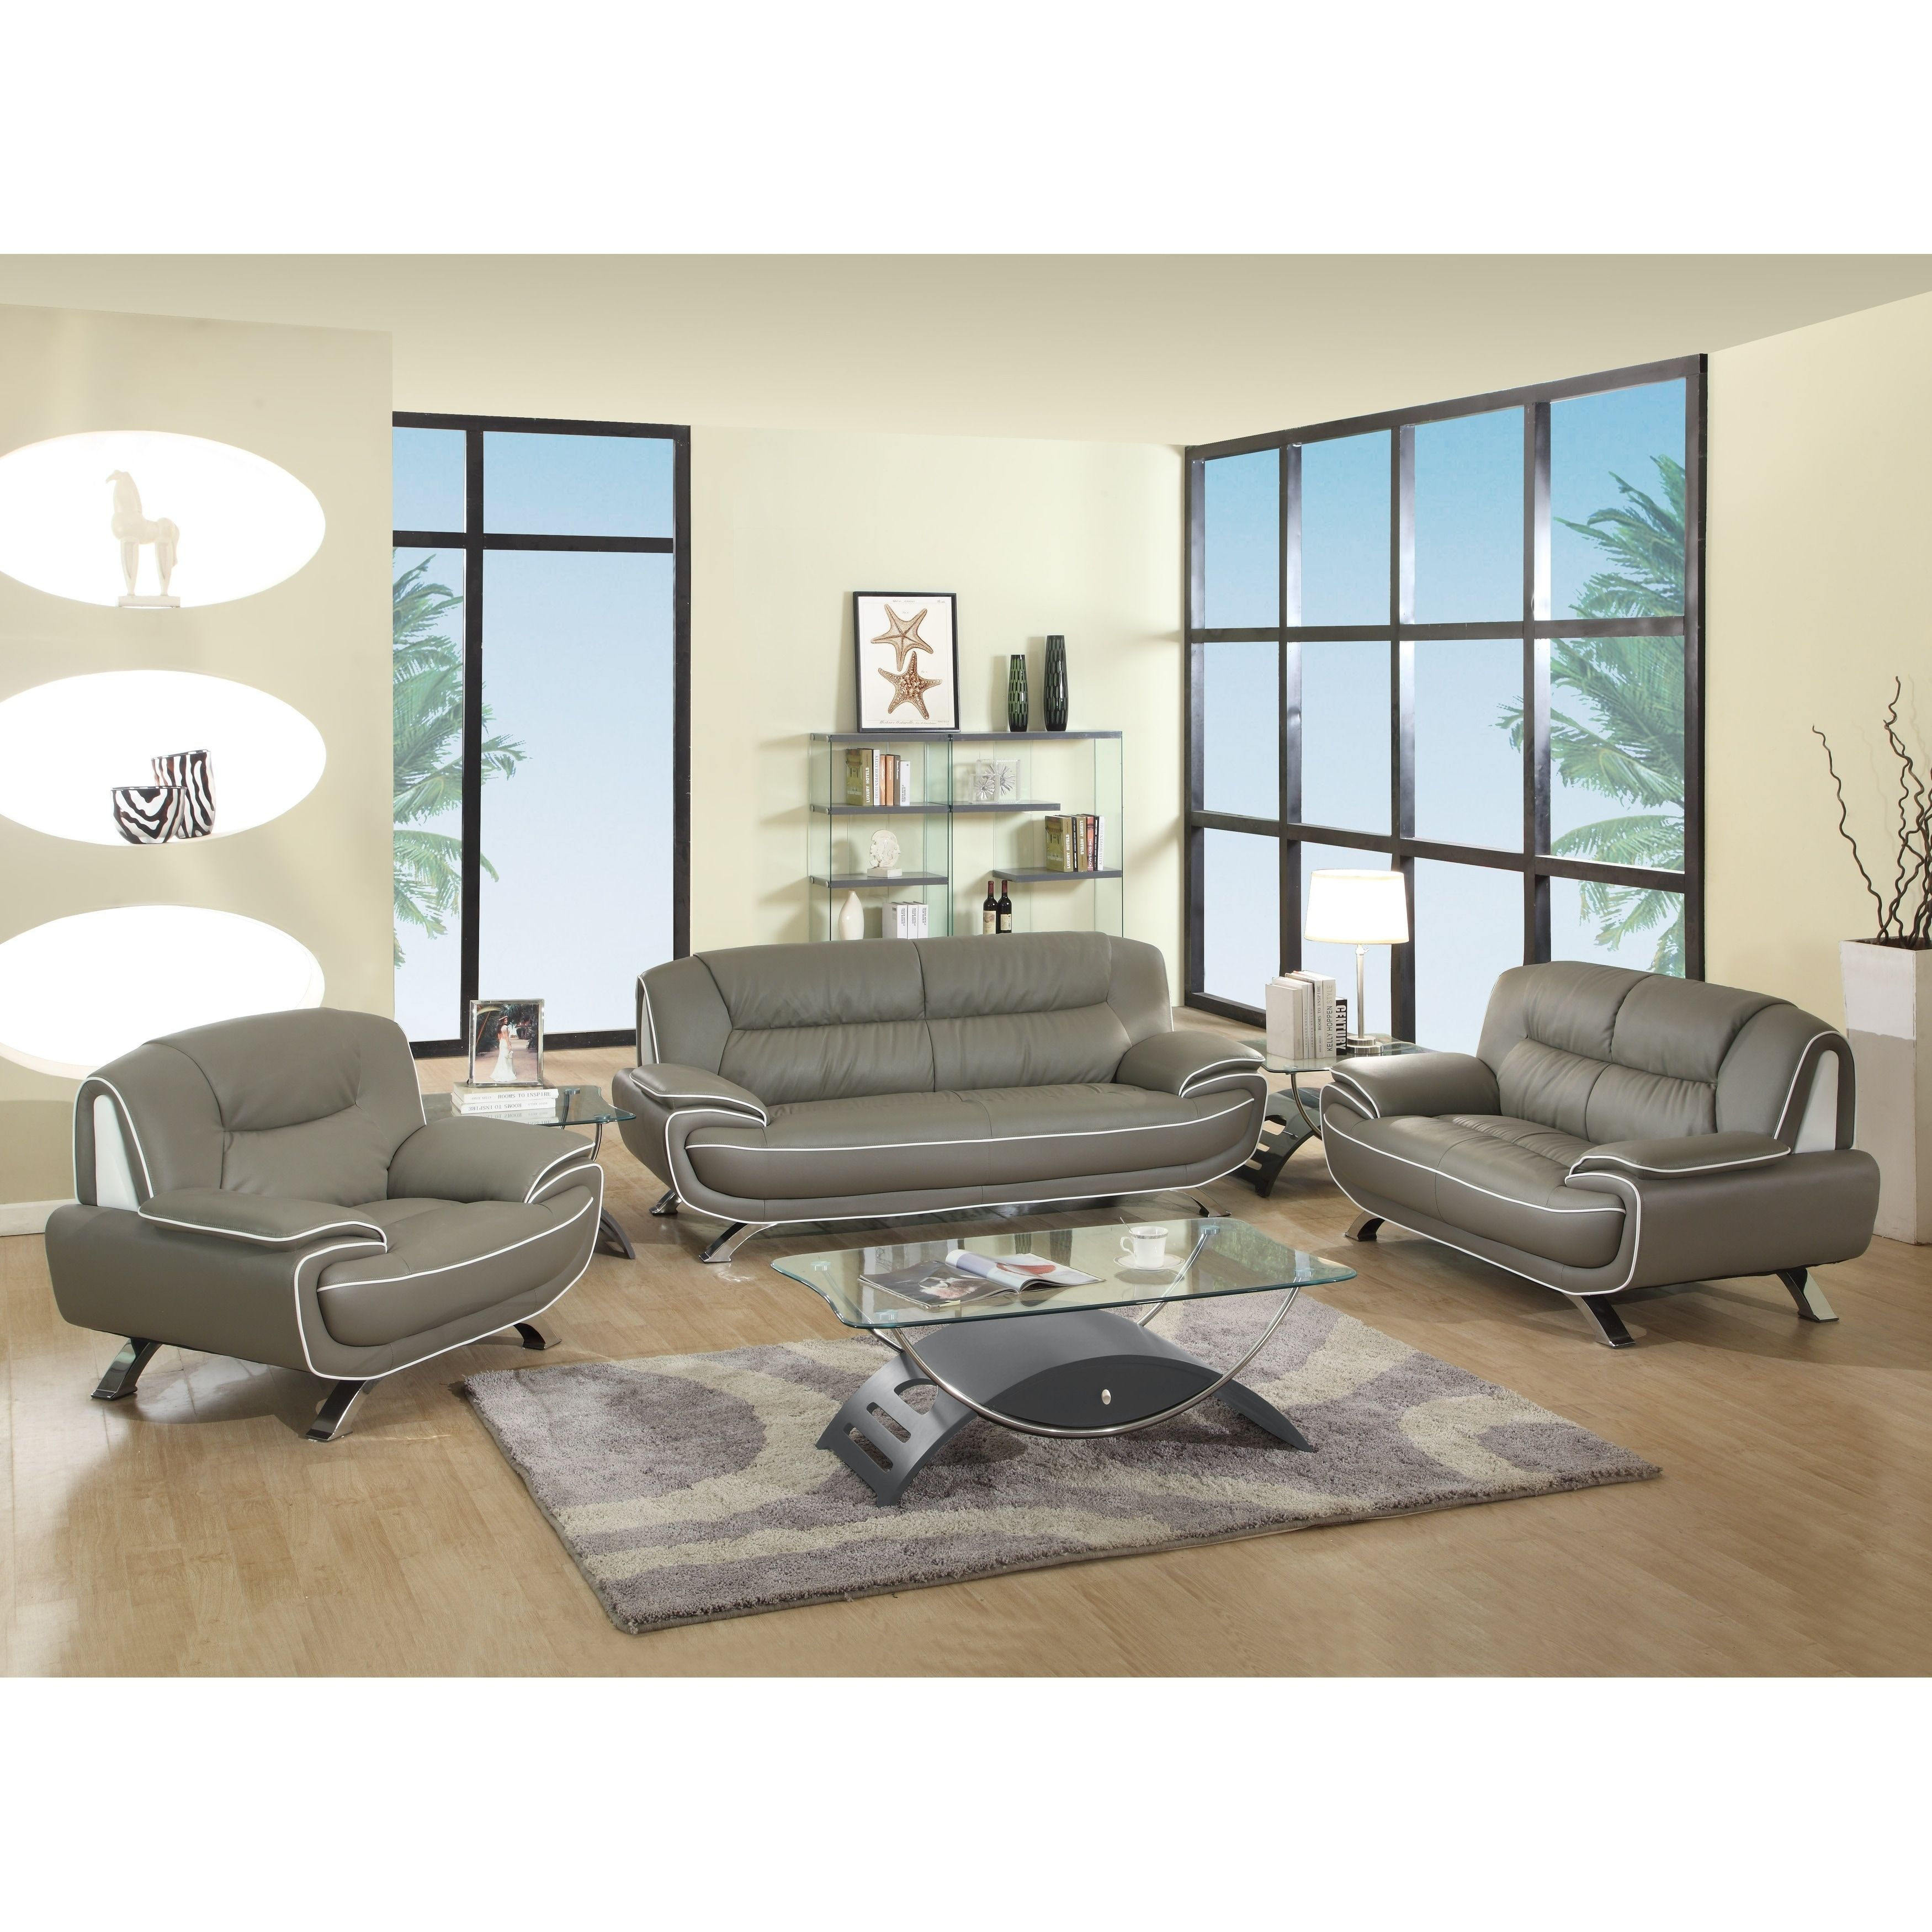 Global United Industries Olympia Luxury Leather Match Upholstered 3